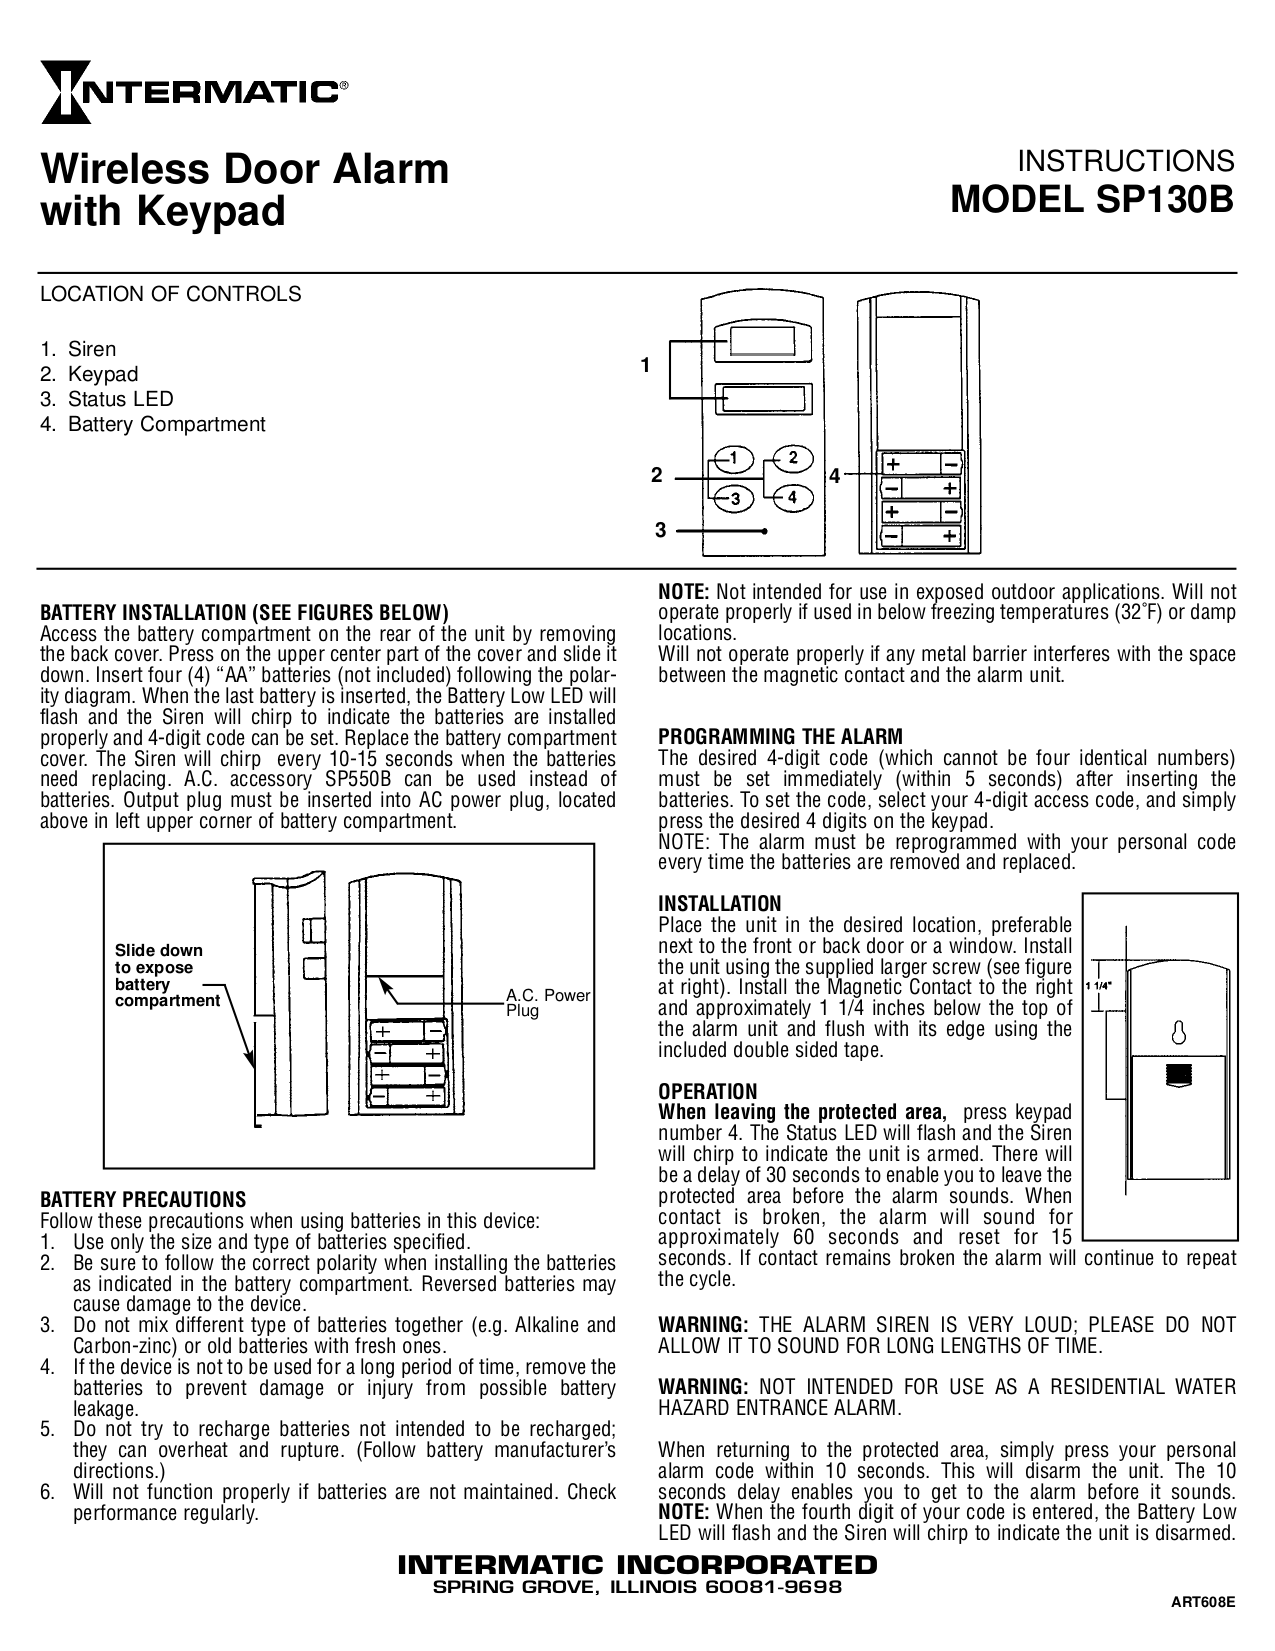 Download free pdf for Intermatic SP130B Door Alarms Other